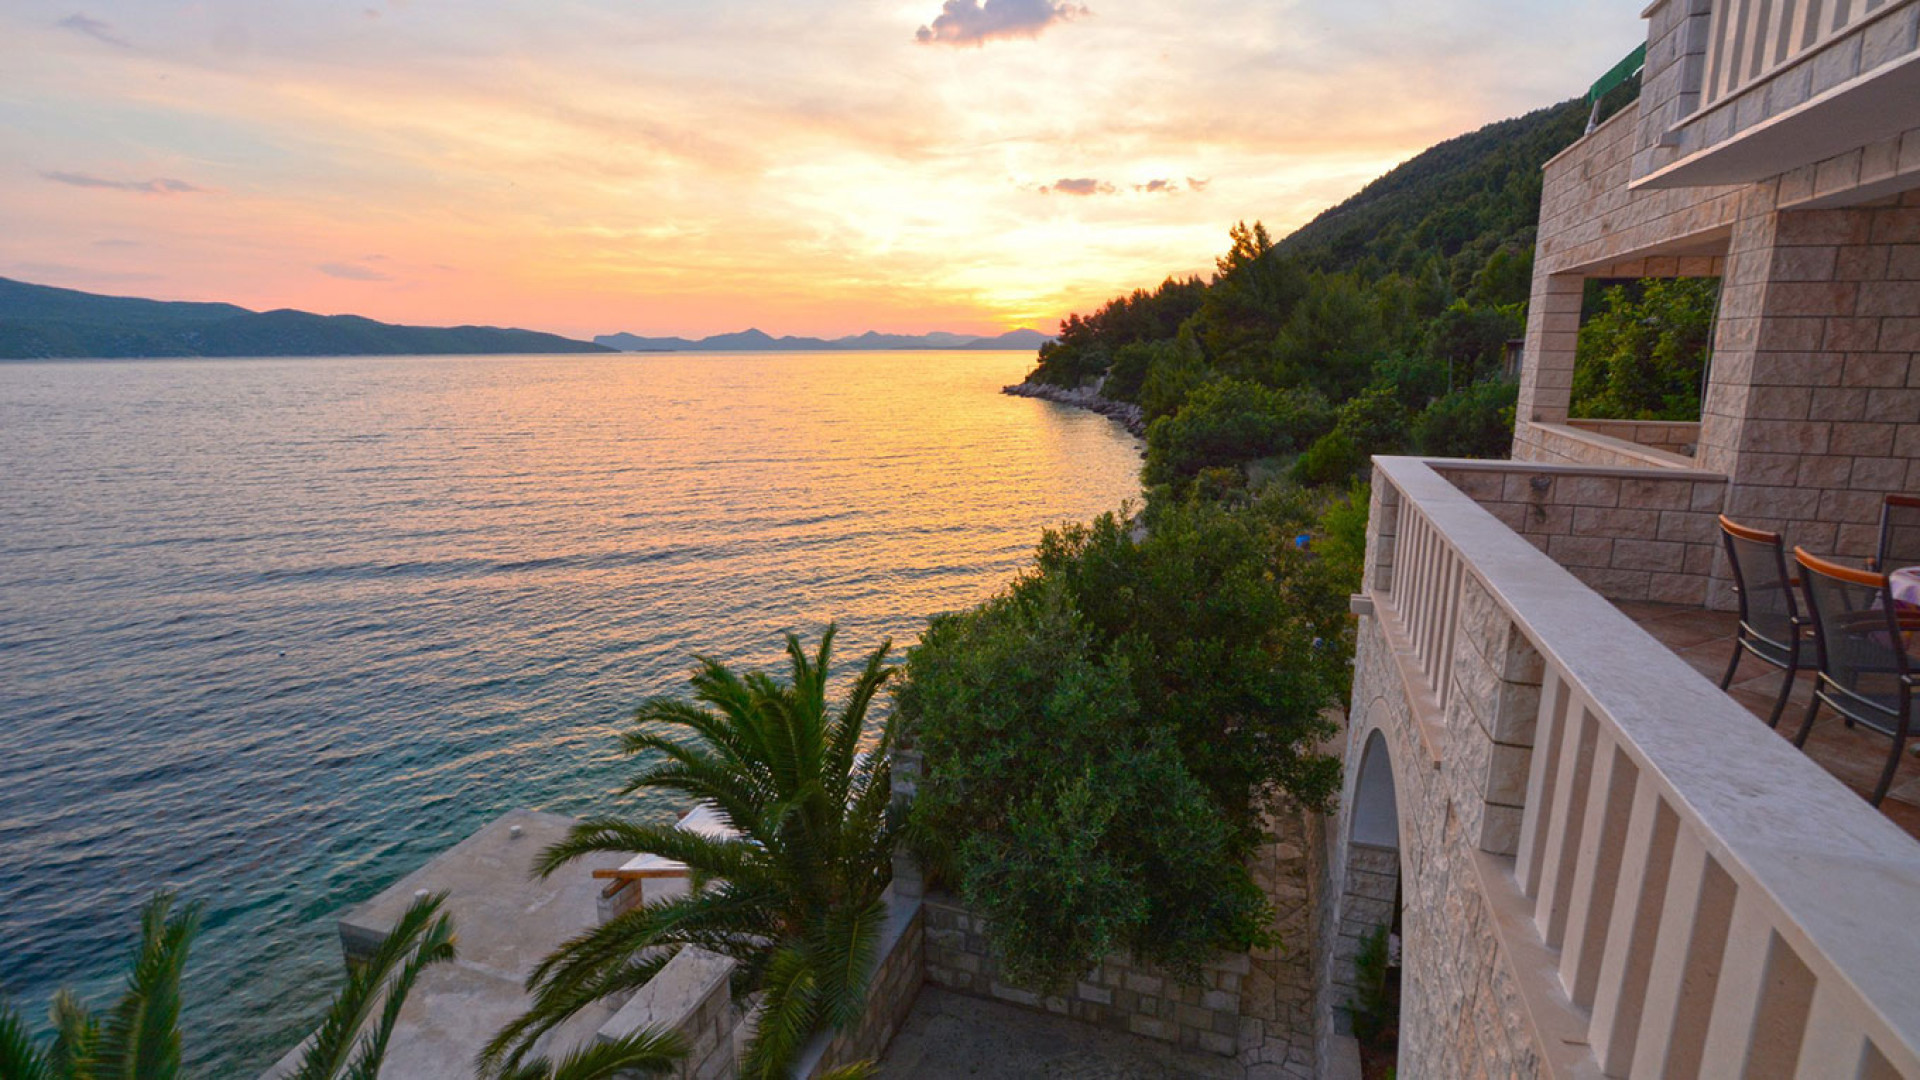 The apartments provide amazing views of Elafiti islands and Dubrovnik Riviera.